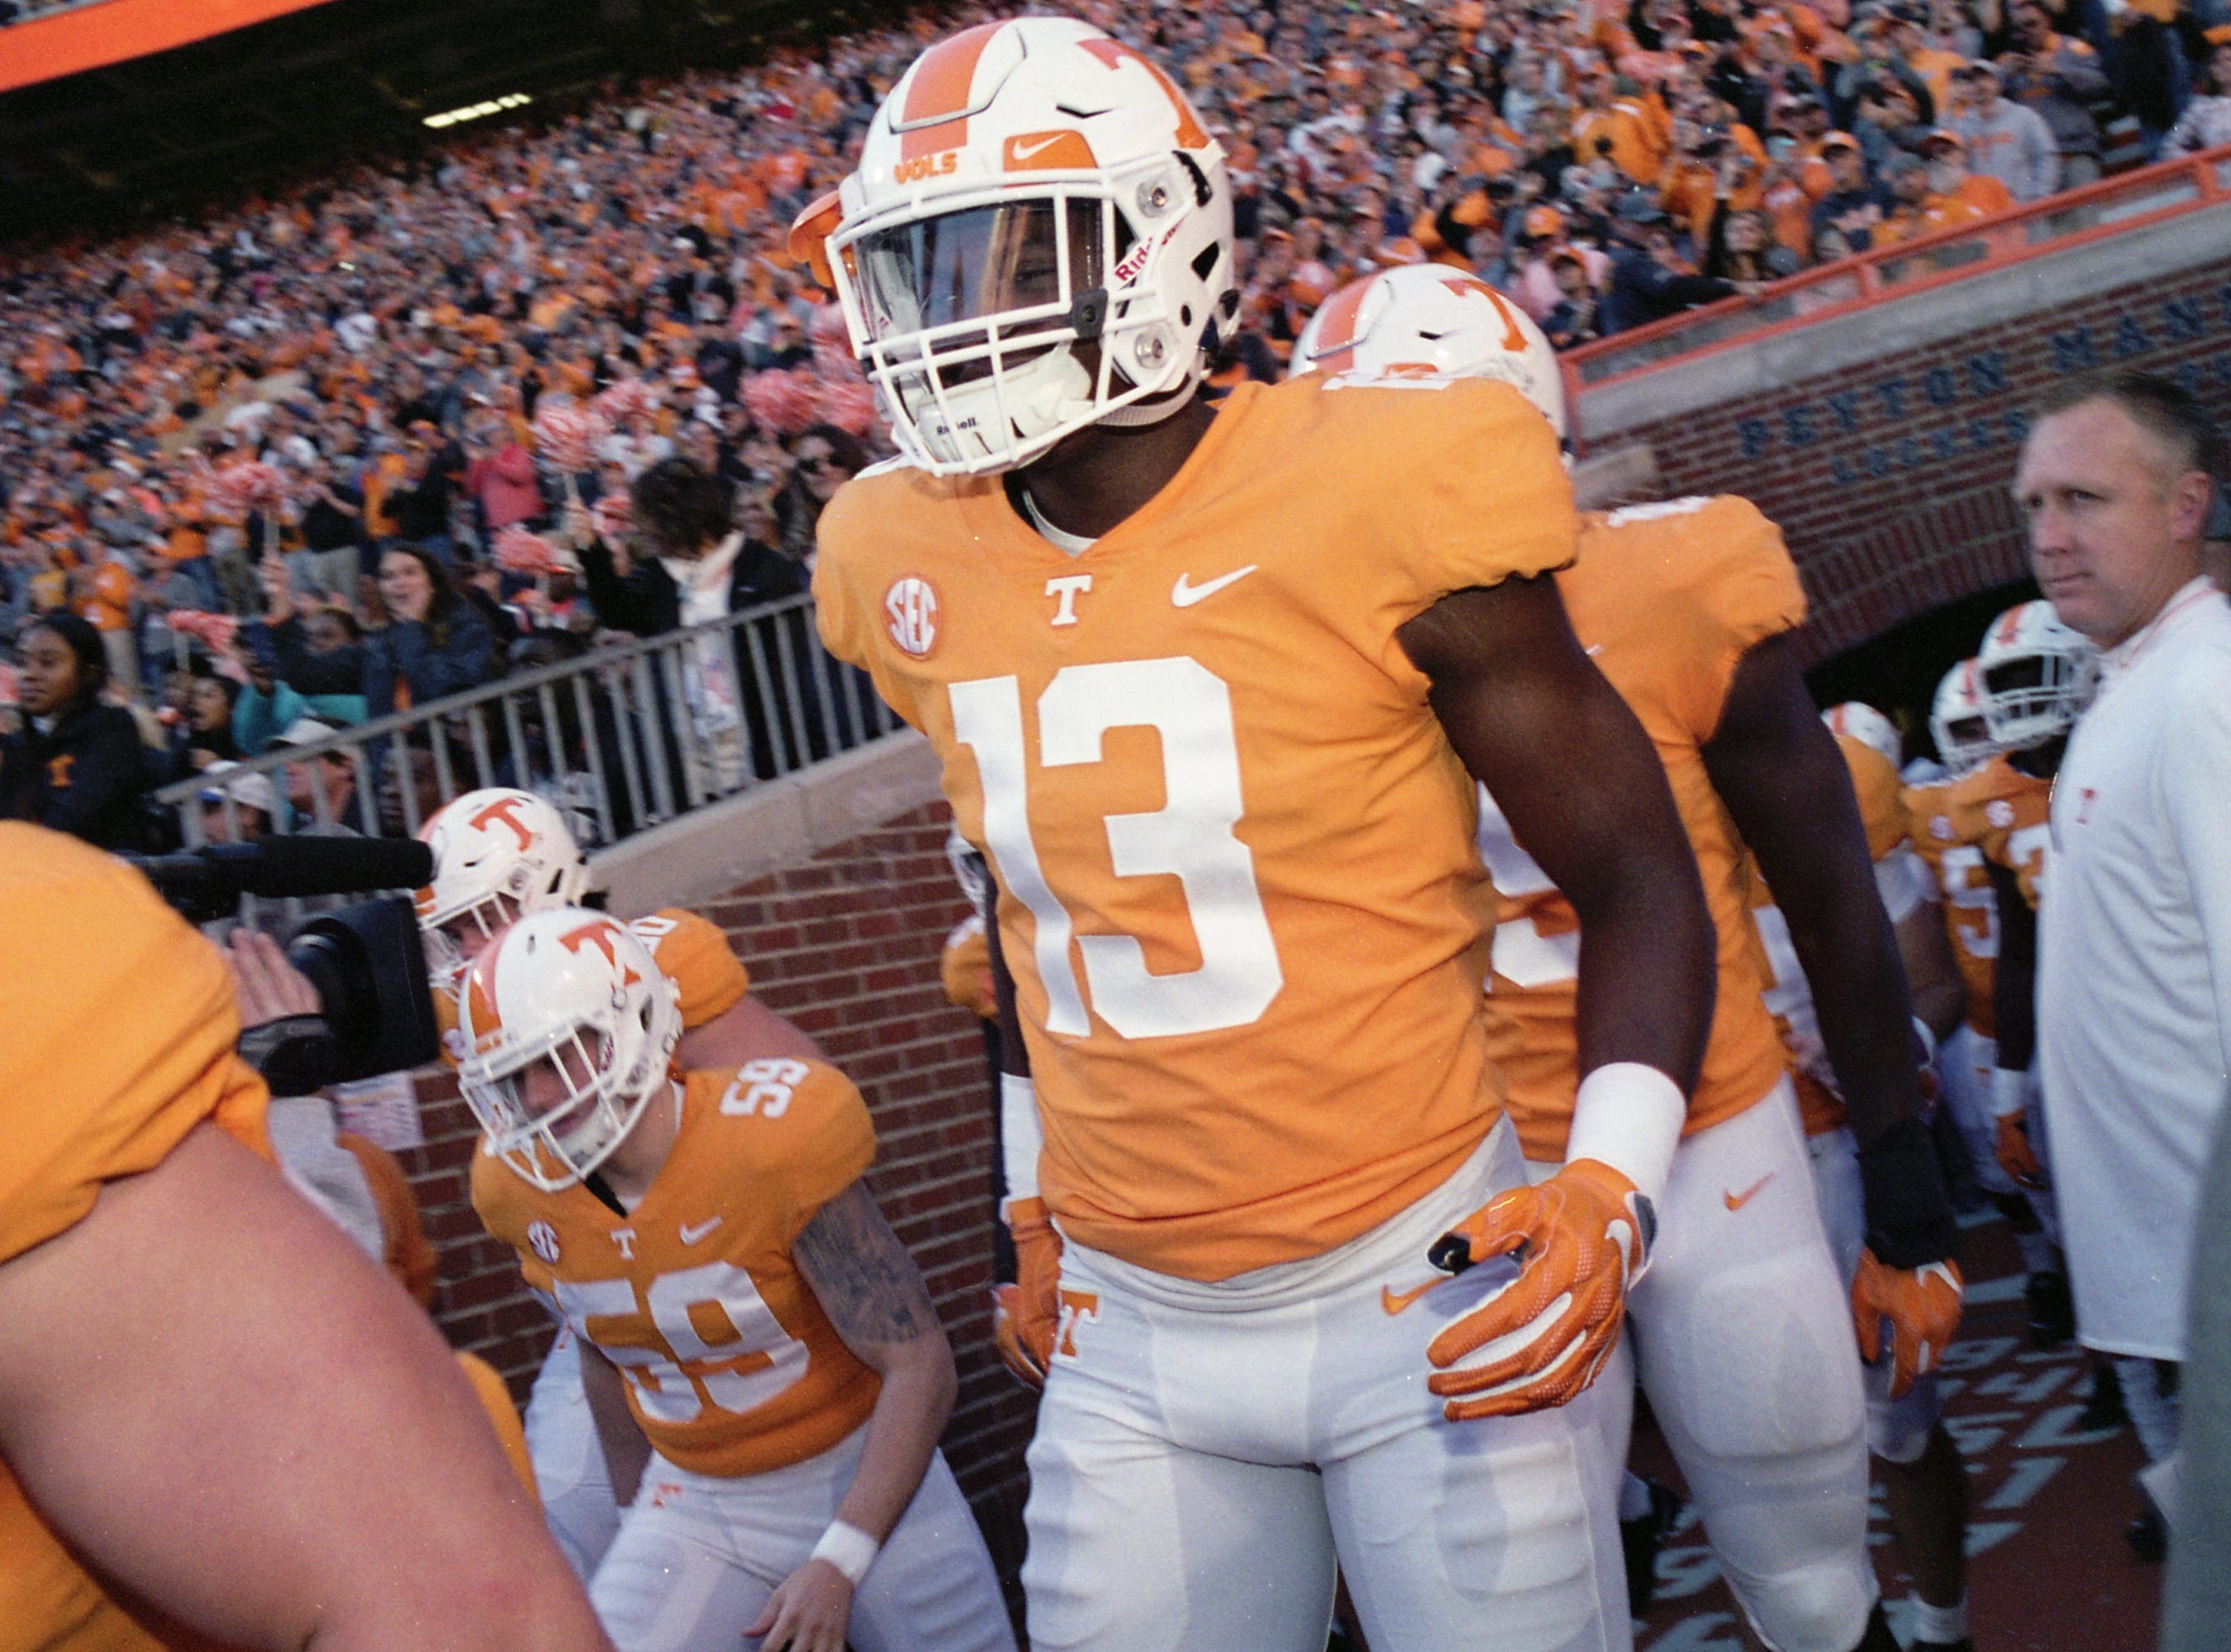 Tennessee linebacker Deandre Johnson (13) runs onto the field from the locker room during a game between Tennessee and Missouri at Neyland Stadium in Knoxville, Tennessee on Saturday, November 17, 2018.